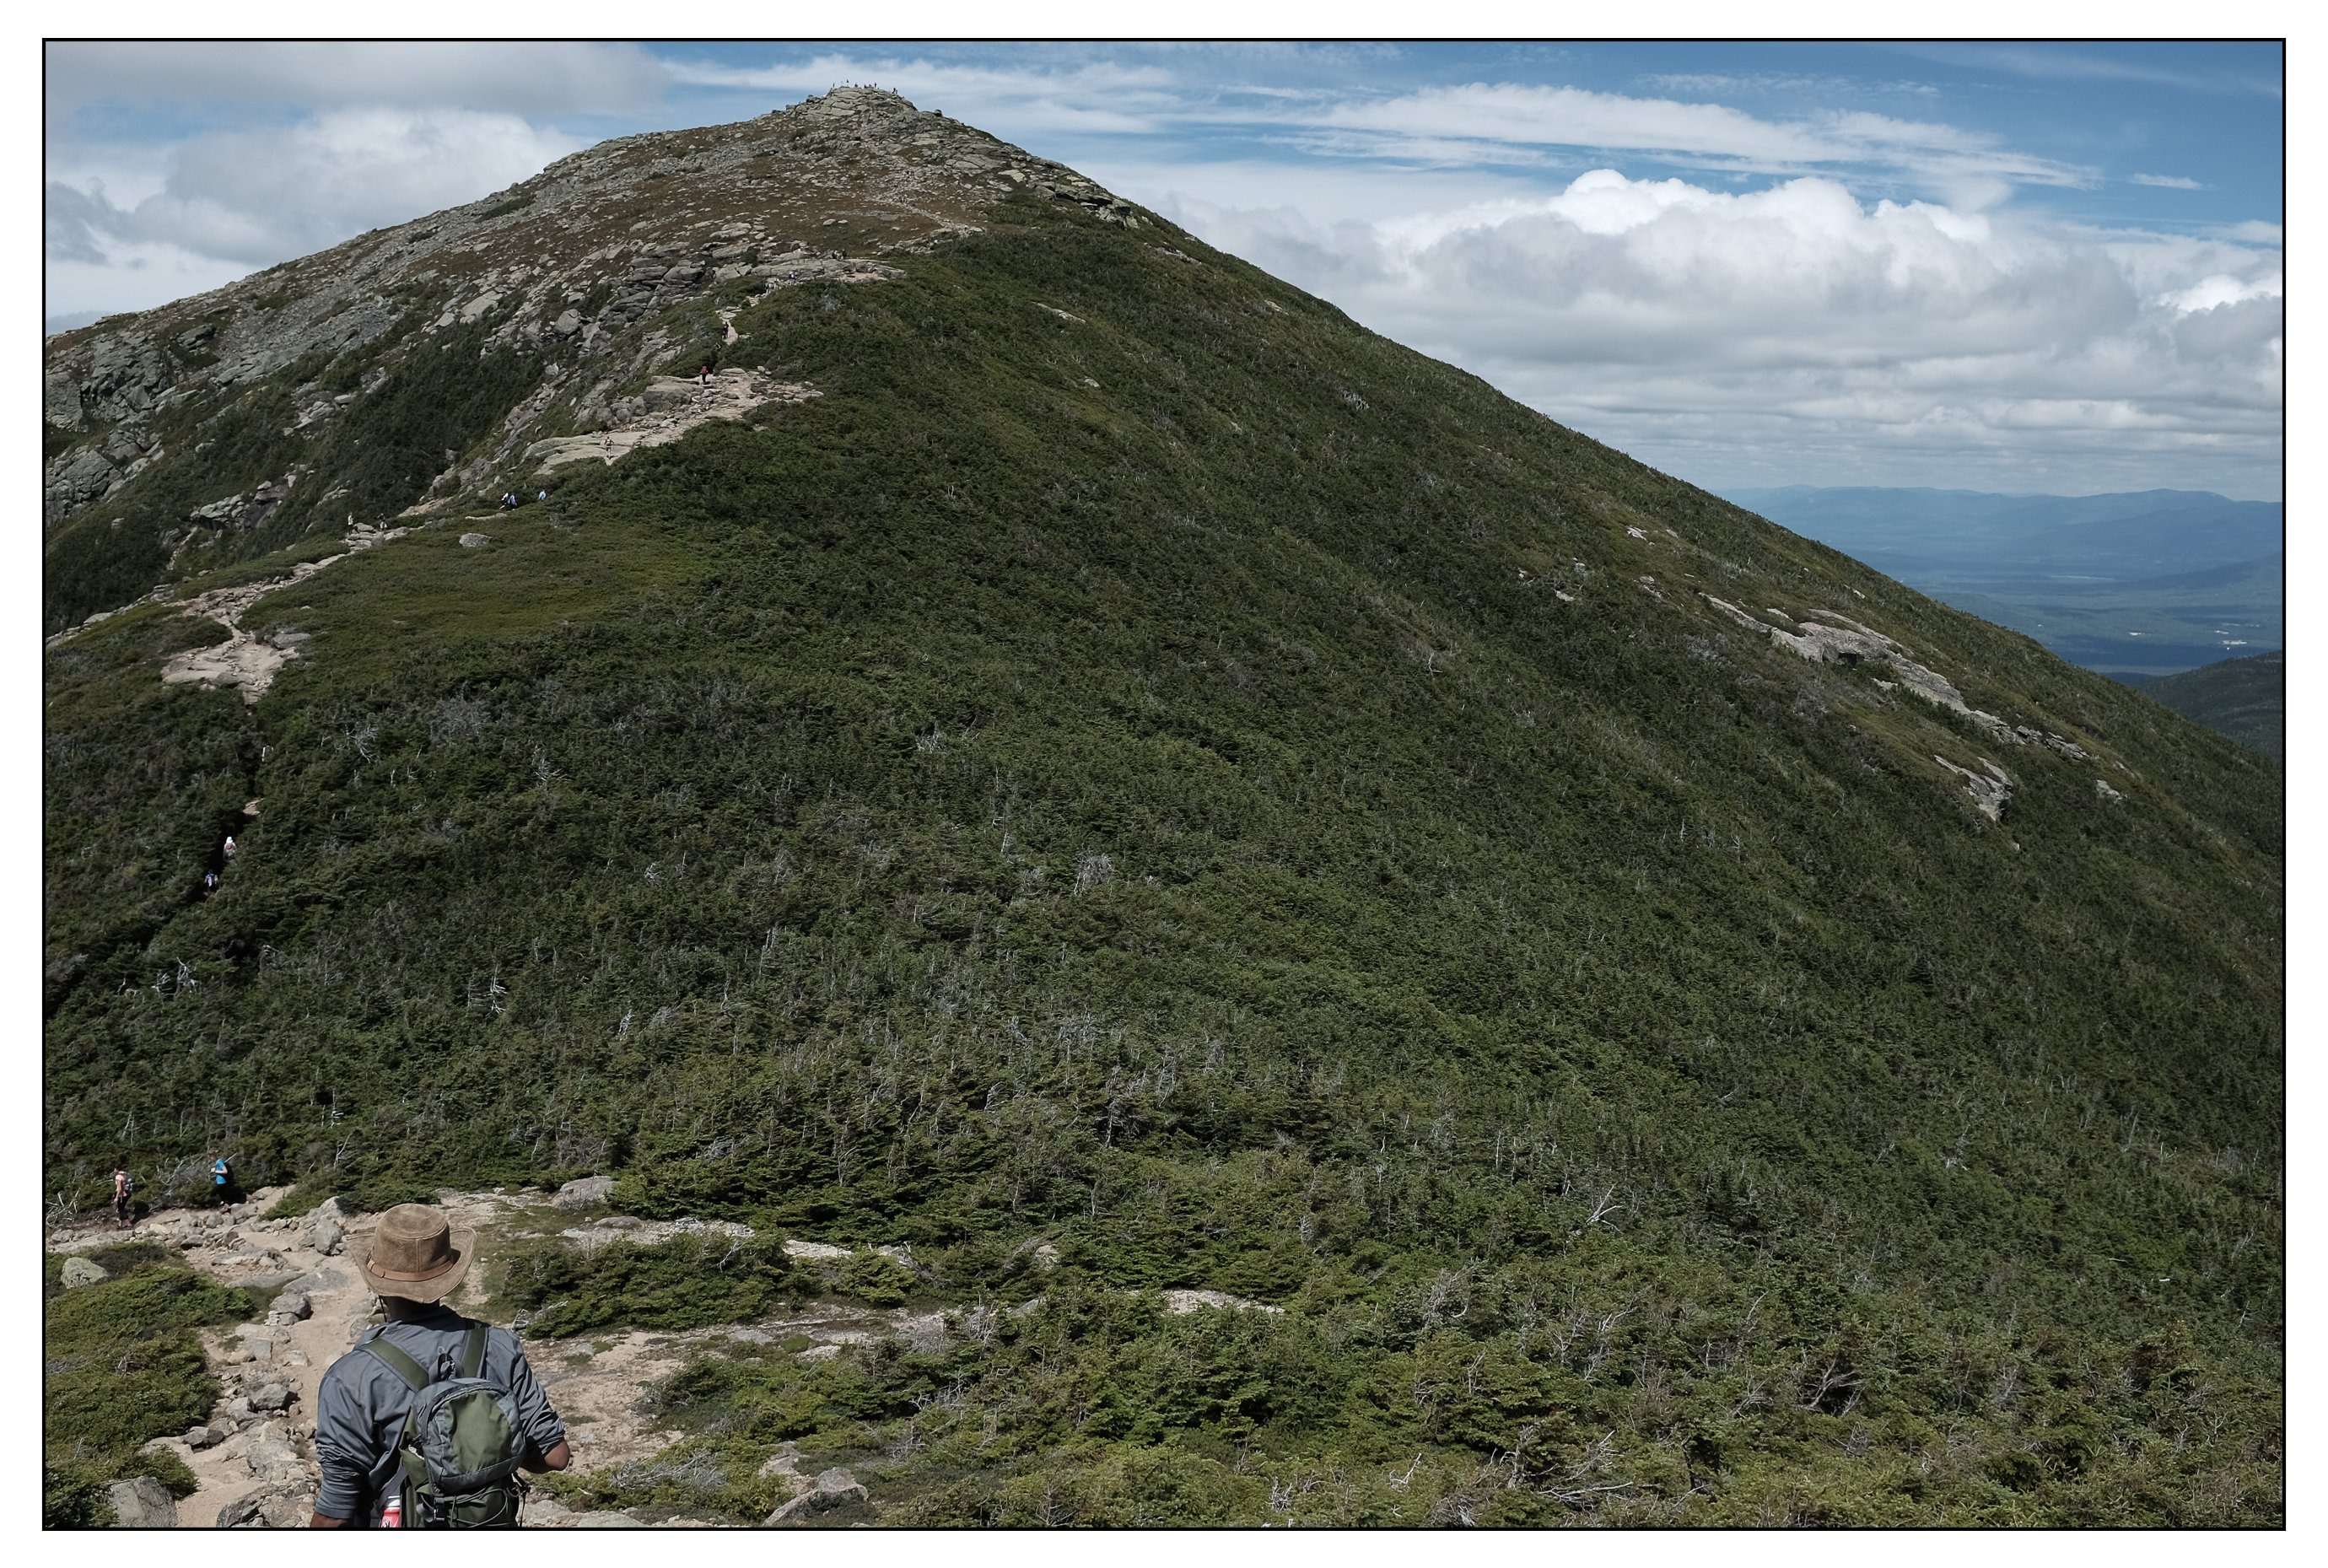 First clear view of the Mt. Lafayette summit after emerging from the forested ridge connecting Mt. Garfield and Mt. Lafayette. Note the inherent fashionability of this NH hiker on his way to the summit.